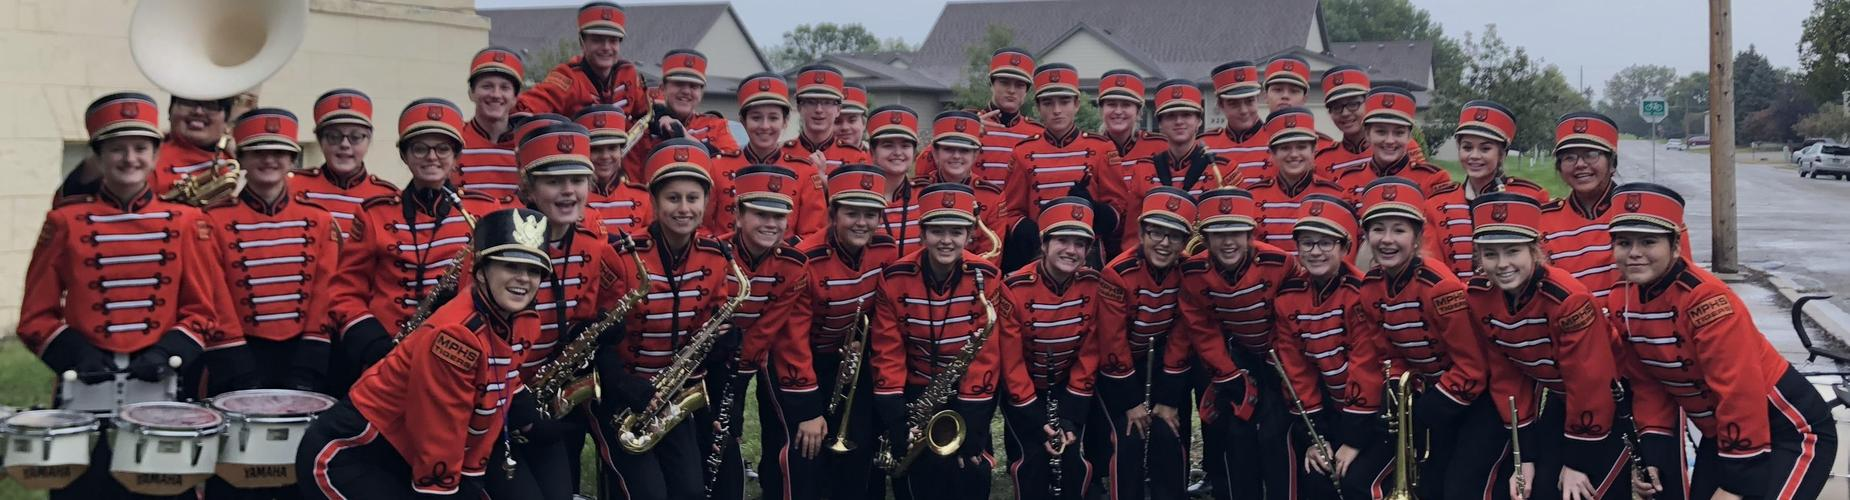 MP Marching Band